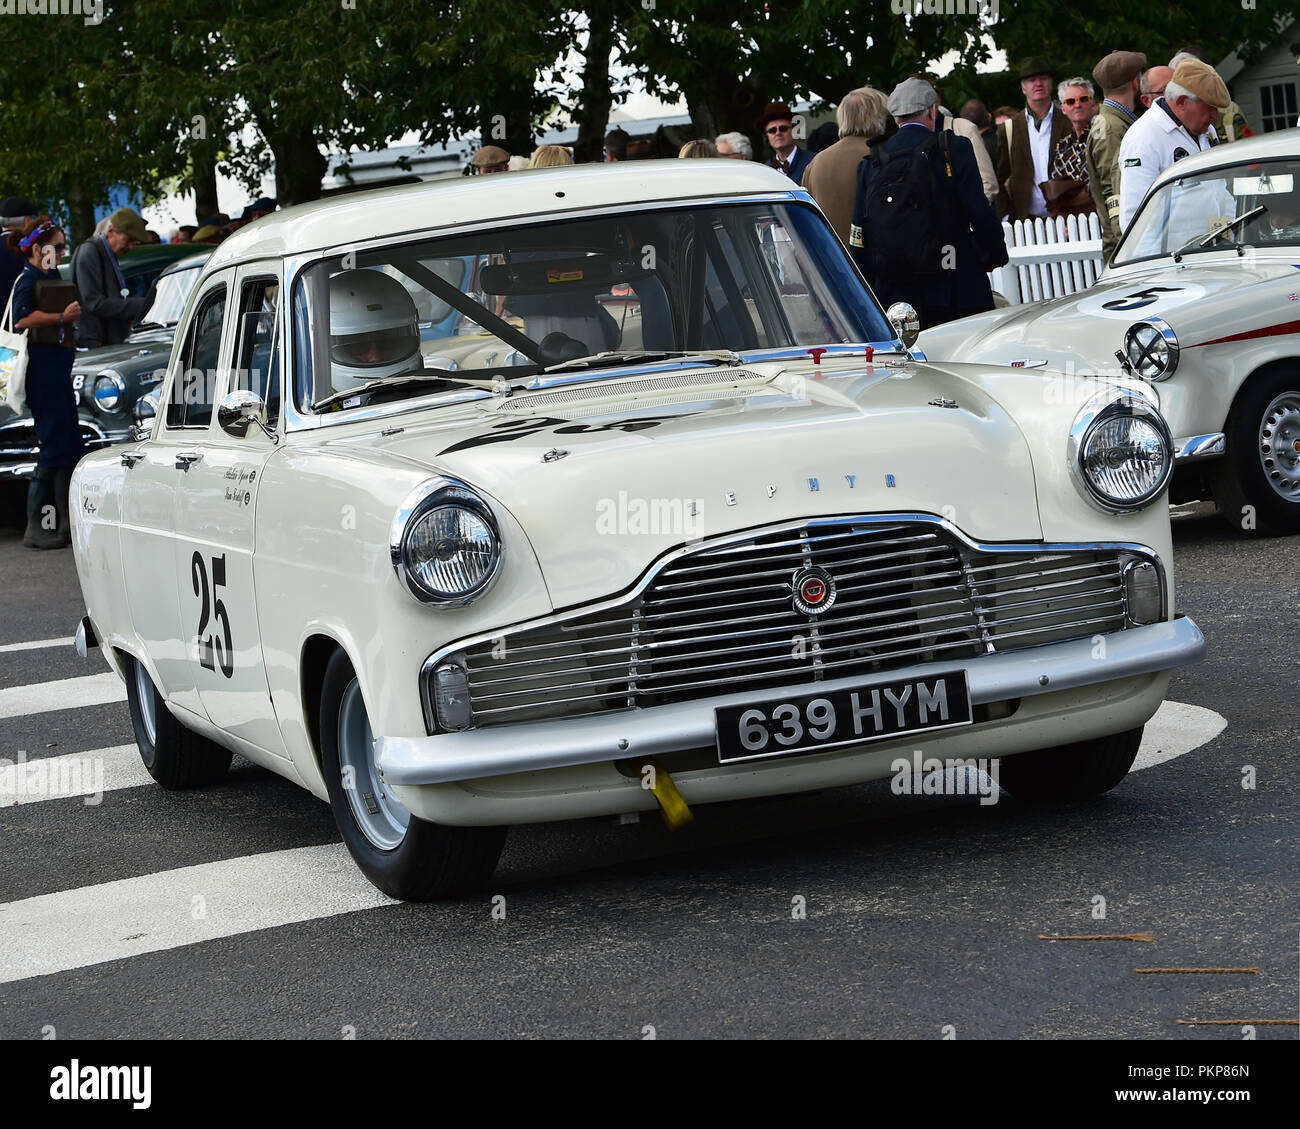 Ford Zephyr Stock Photos & Ford Zephyr Stock Images